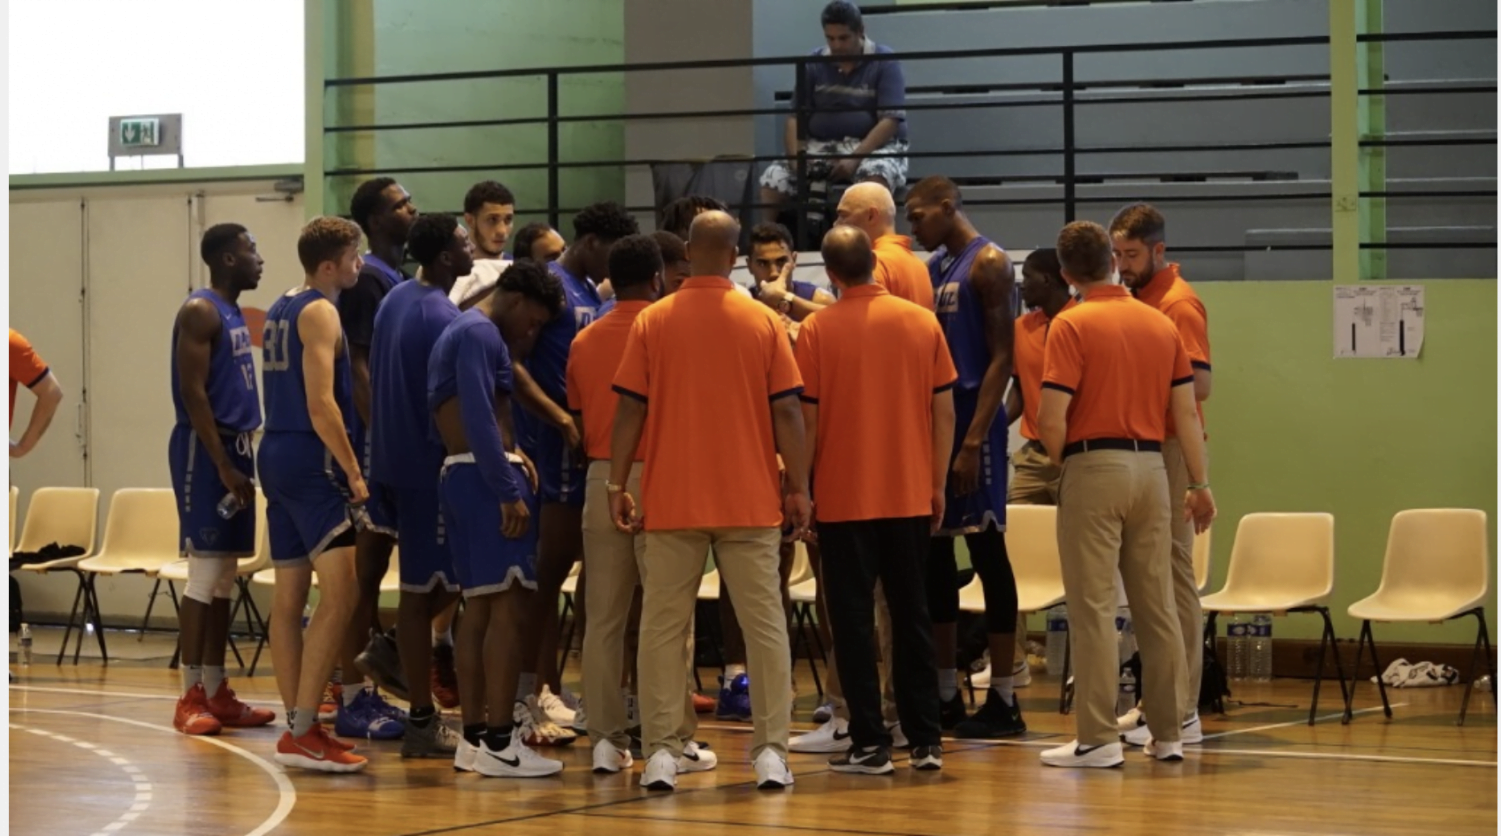 The DePaul men's basketball team huddles up around head coach Dave Leitao during a timeout in the first half. The Blue Demons defeated the Paris PK All Stars 118-56 on Aug. 8.